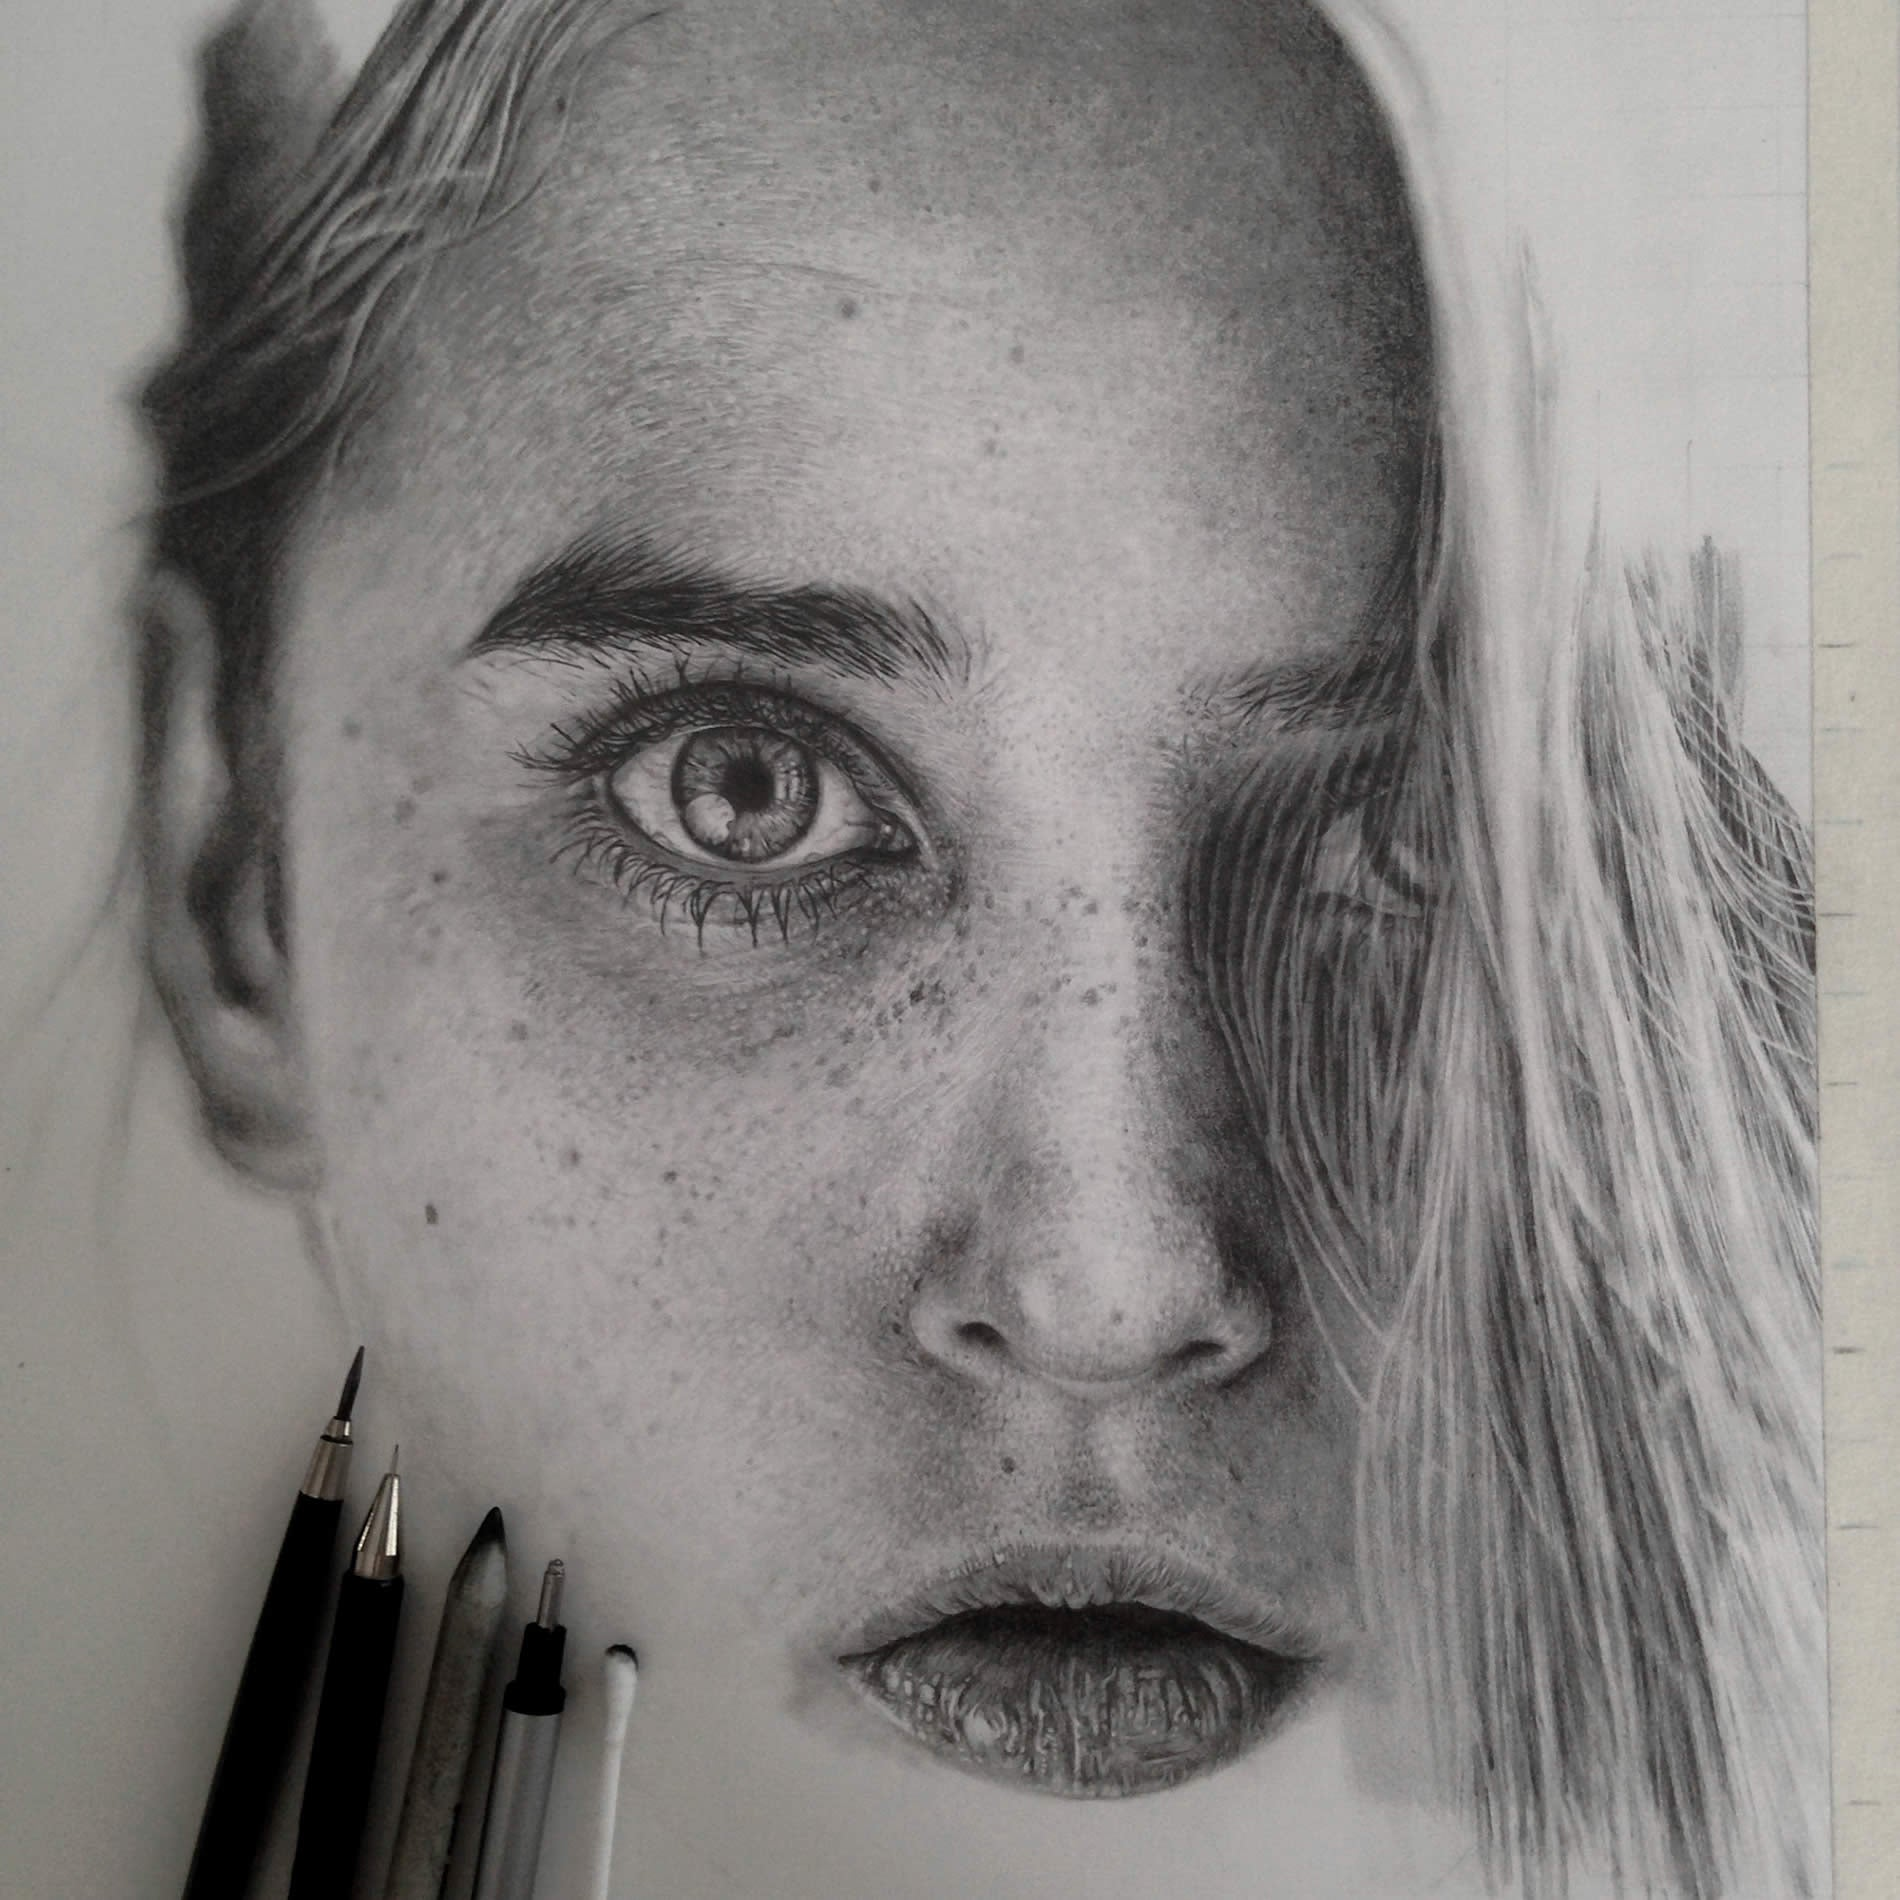 Hyperrealistic graphite drawings are indistinguishable from photos